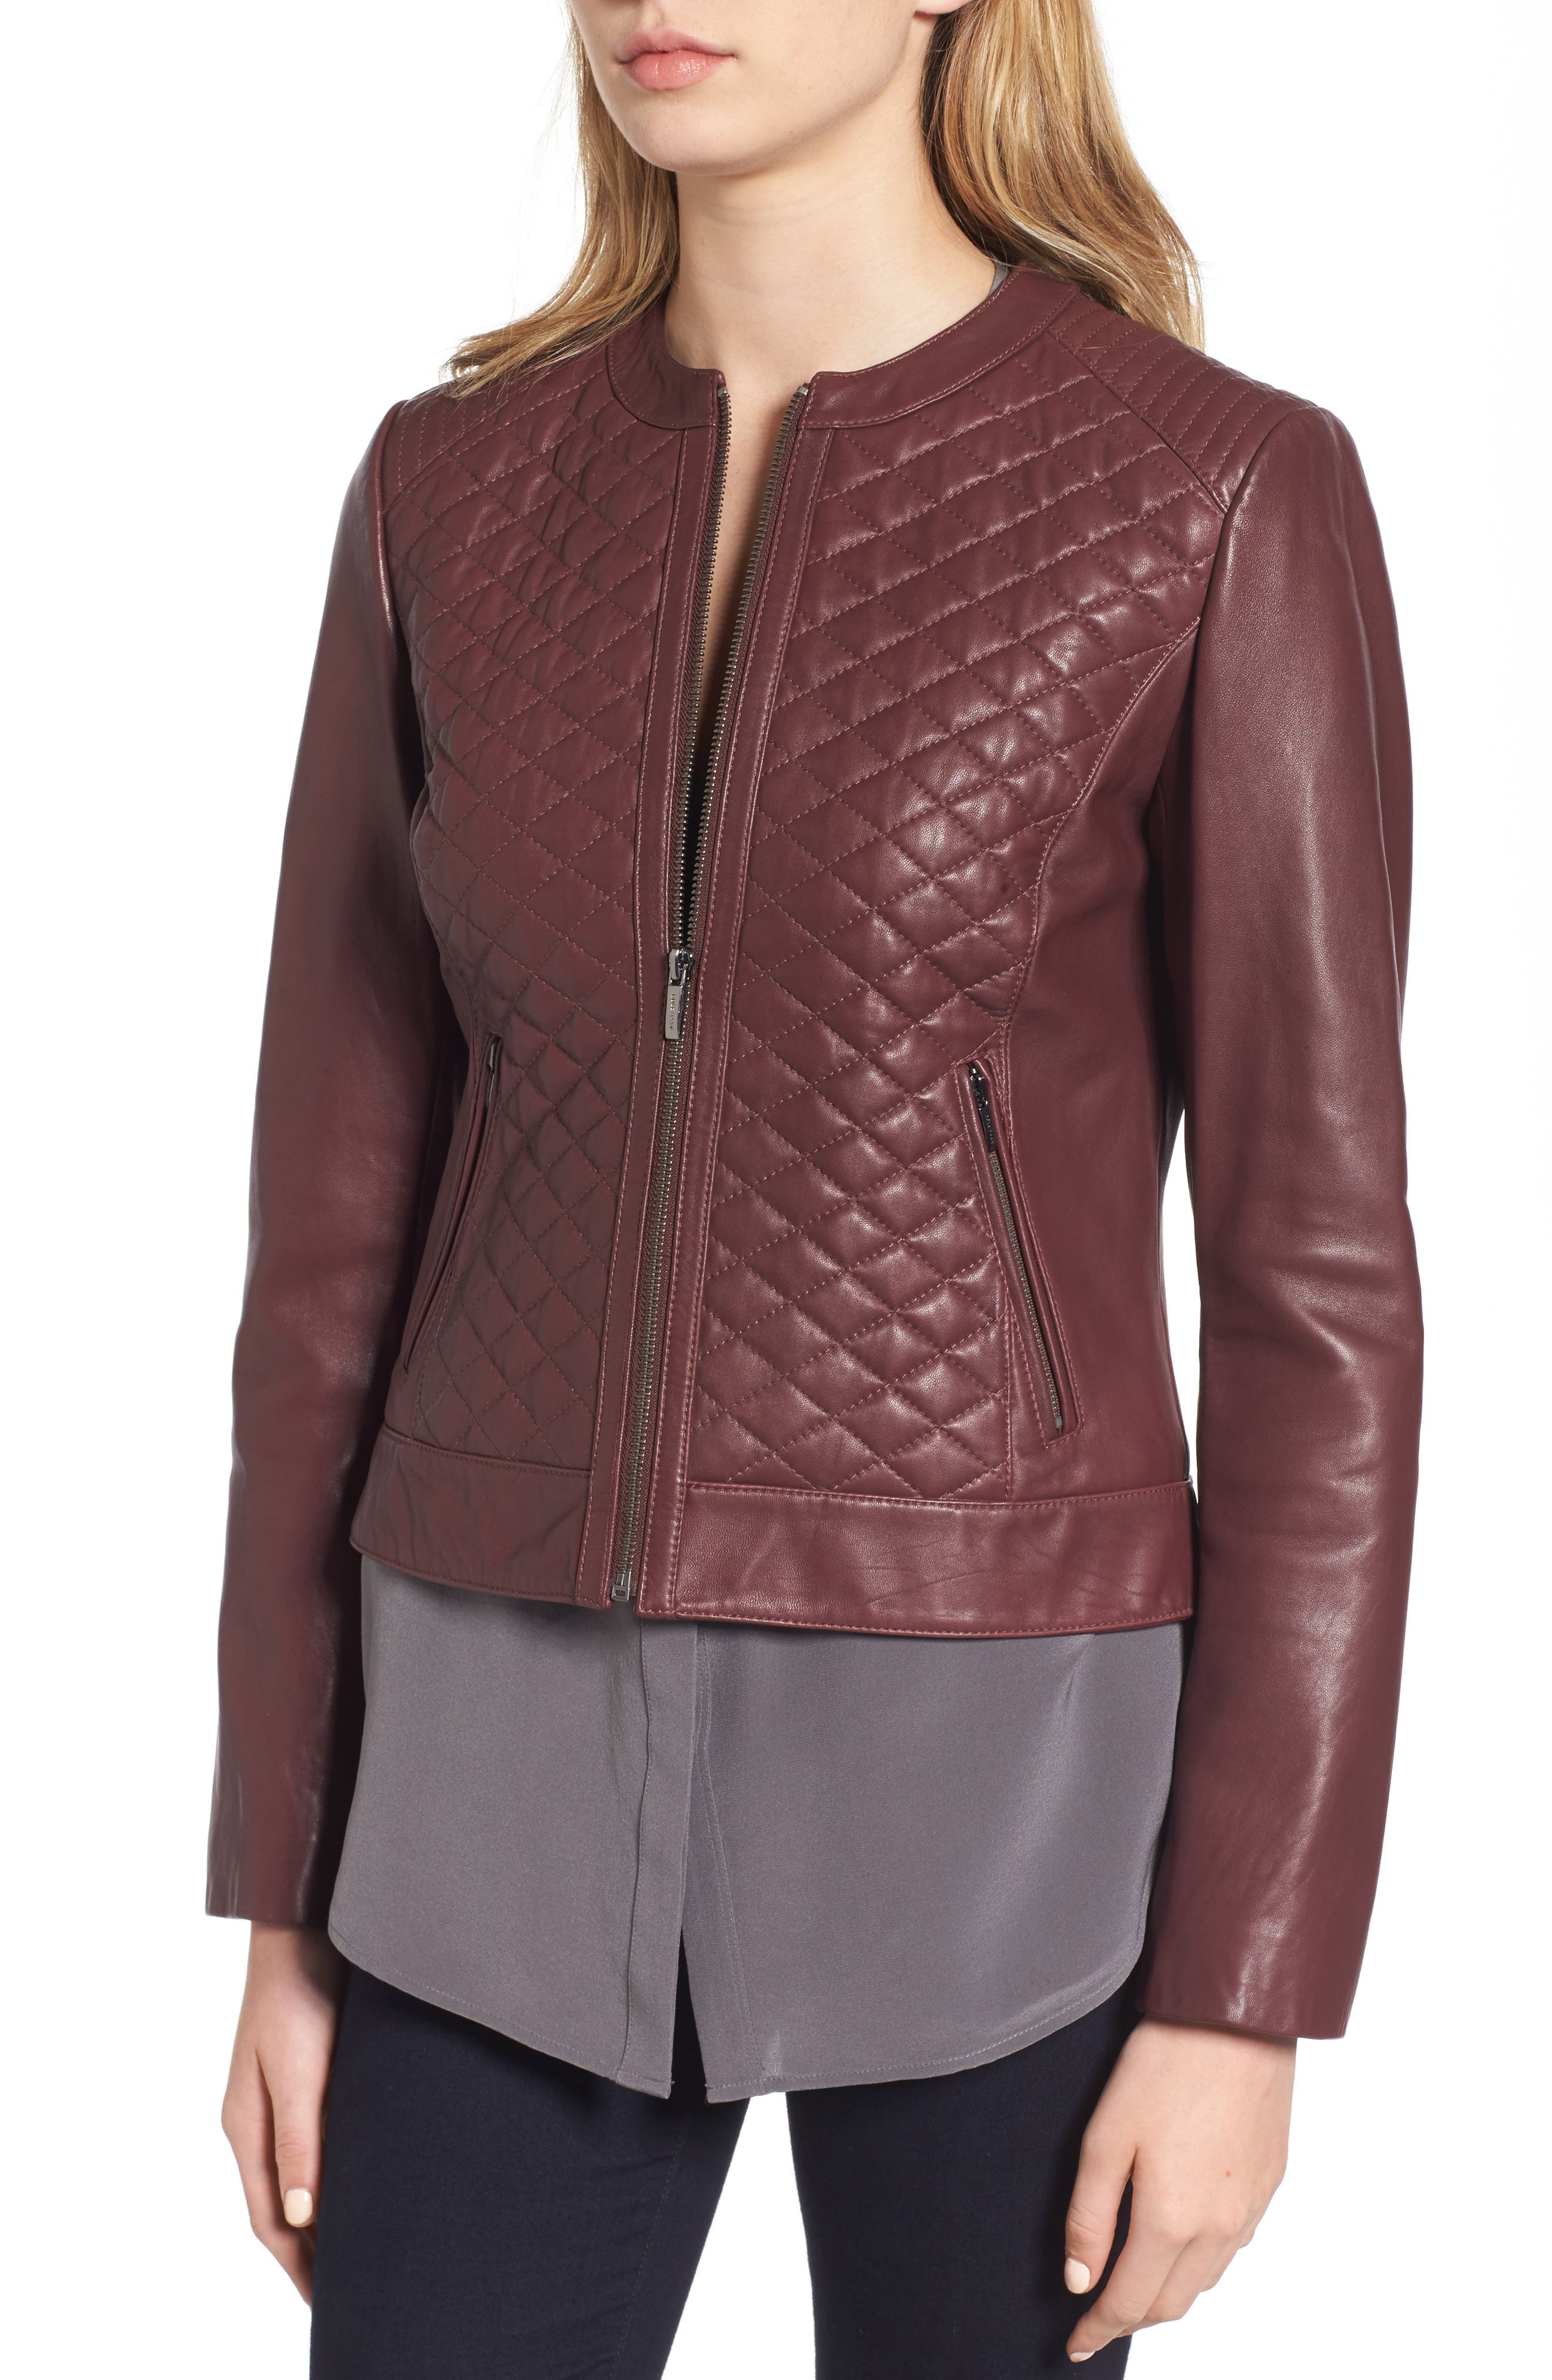 COLE HAAN,                             Quilted Leather Moto Jacket,                             Alternate thumbnail 4, color,                             602